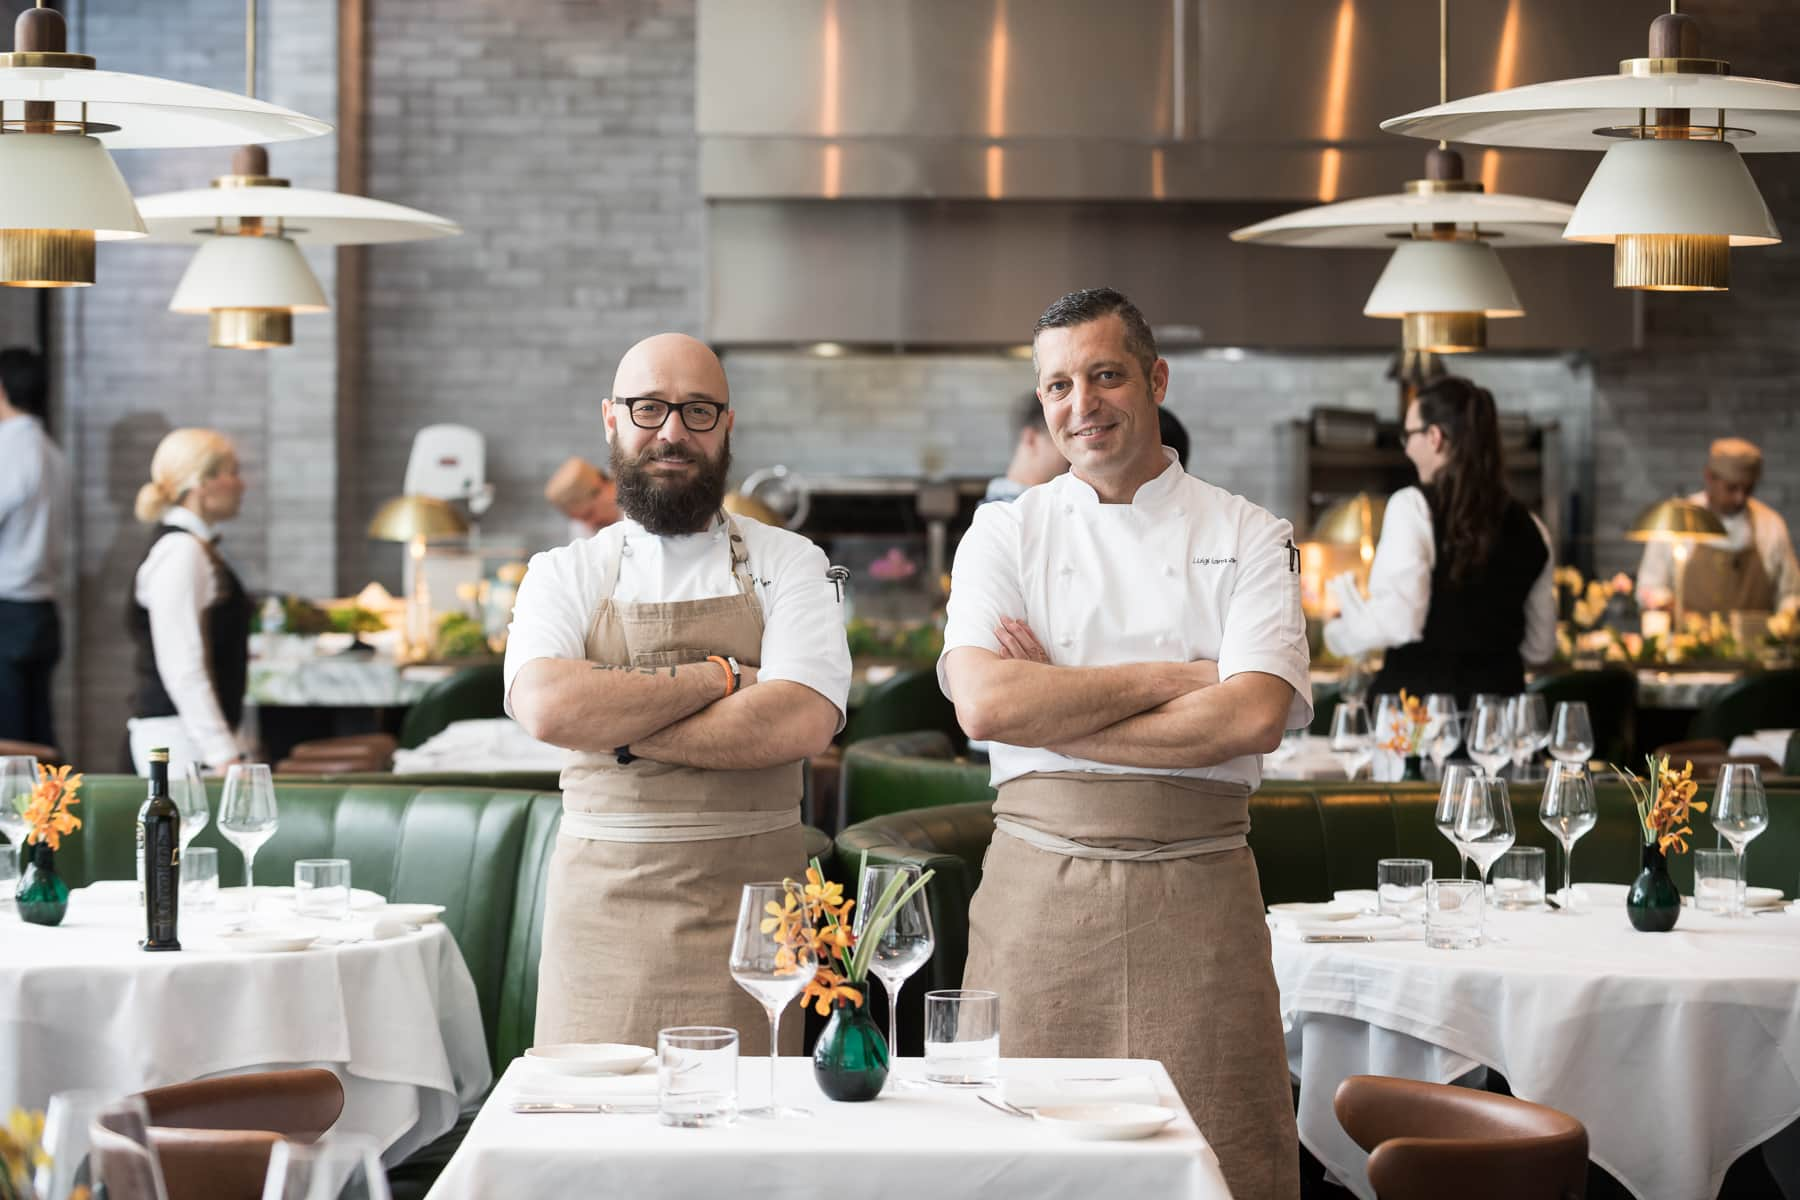 Corporate Chef Mert Seran, Da Mario Executive Chef Luigi Iannuario